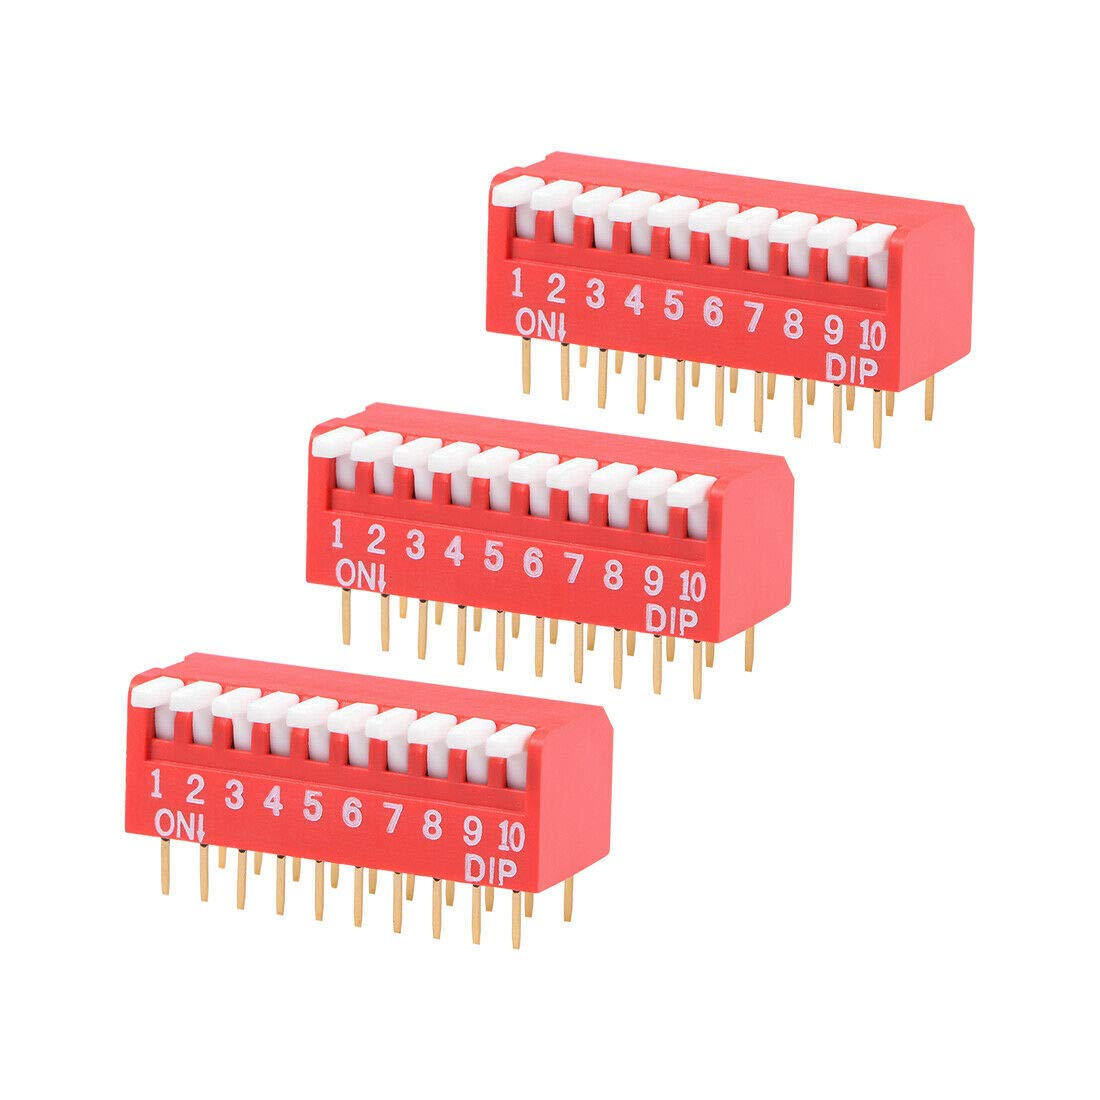 Switches 3 Pcs Red DIP Switch Piano-Dip 1-10 Positions 2.54mm Pitch for Circuit PCB